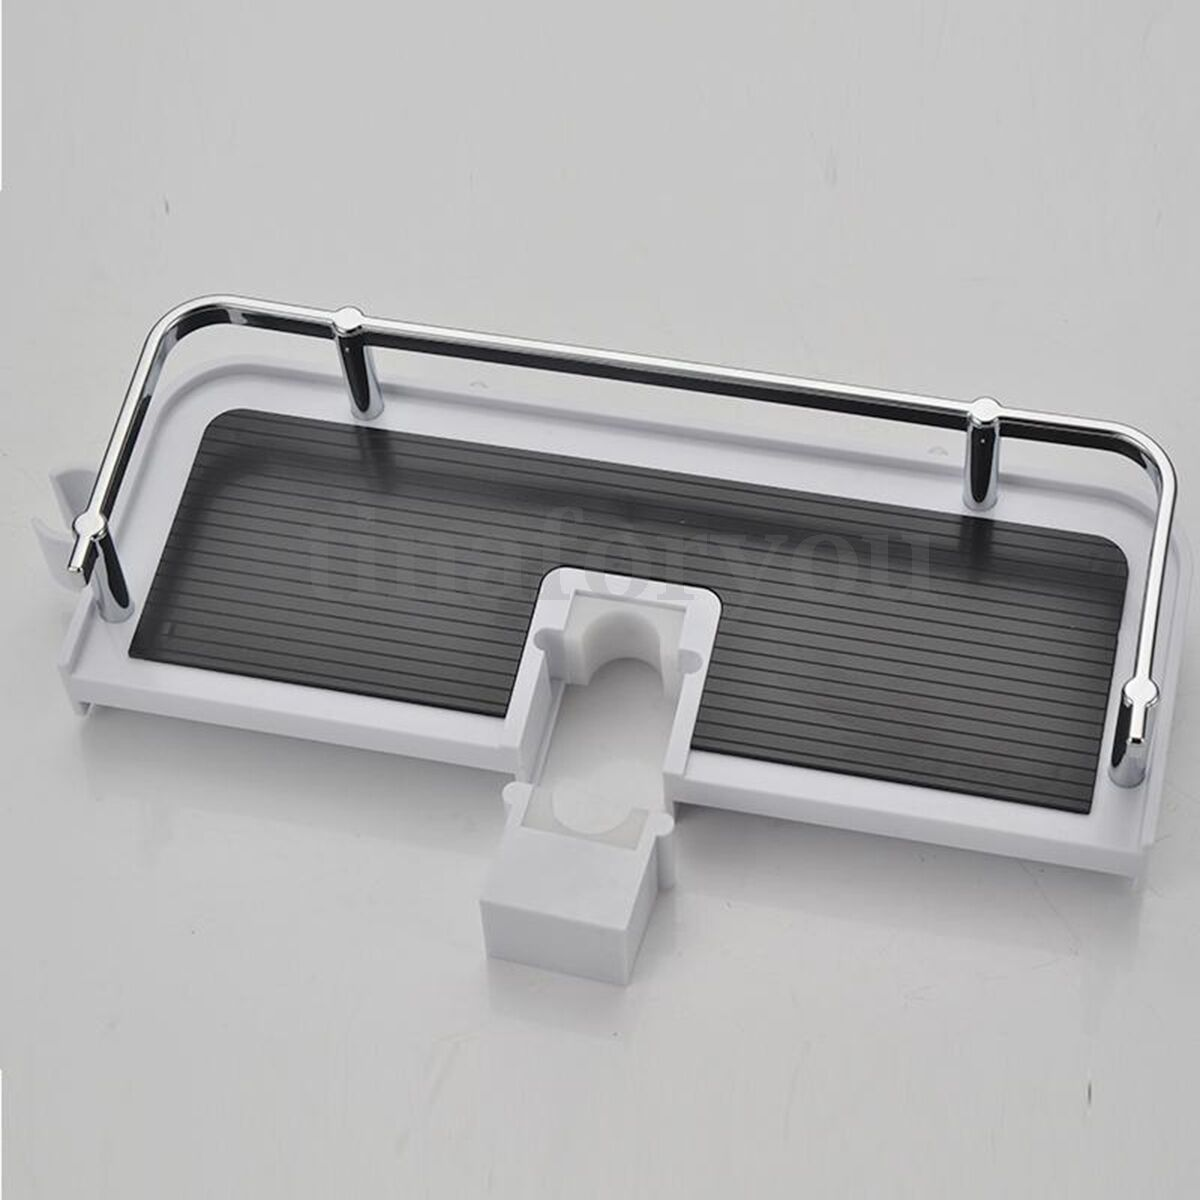 Bathroom Pole Shelf Shower Storage Caddy Rack Organiser Tray Holder Accessory